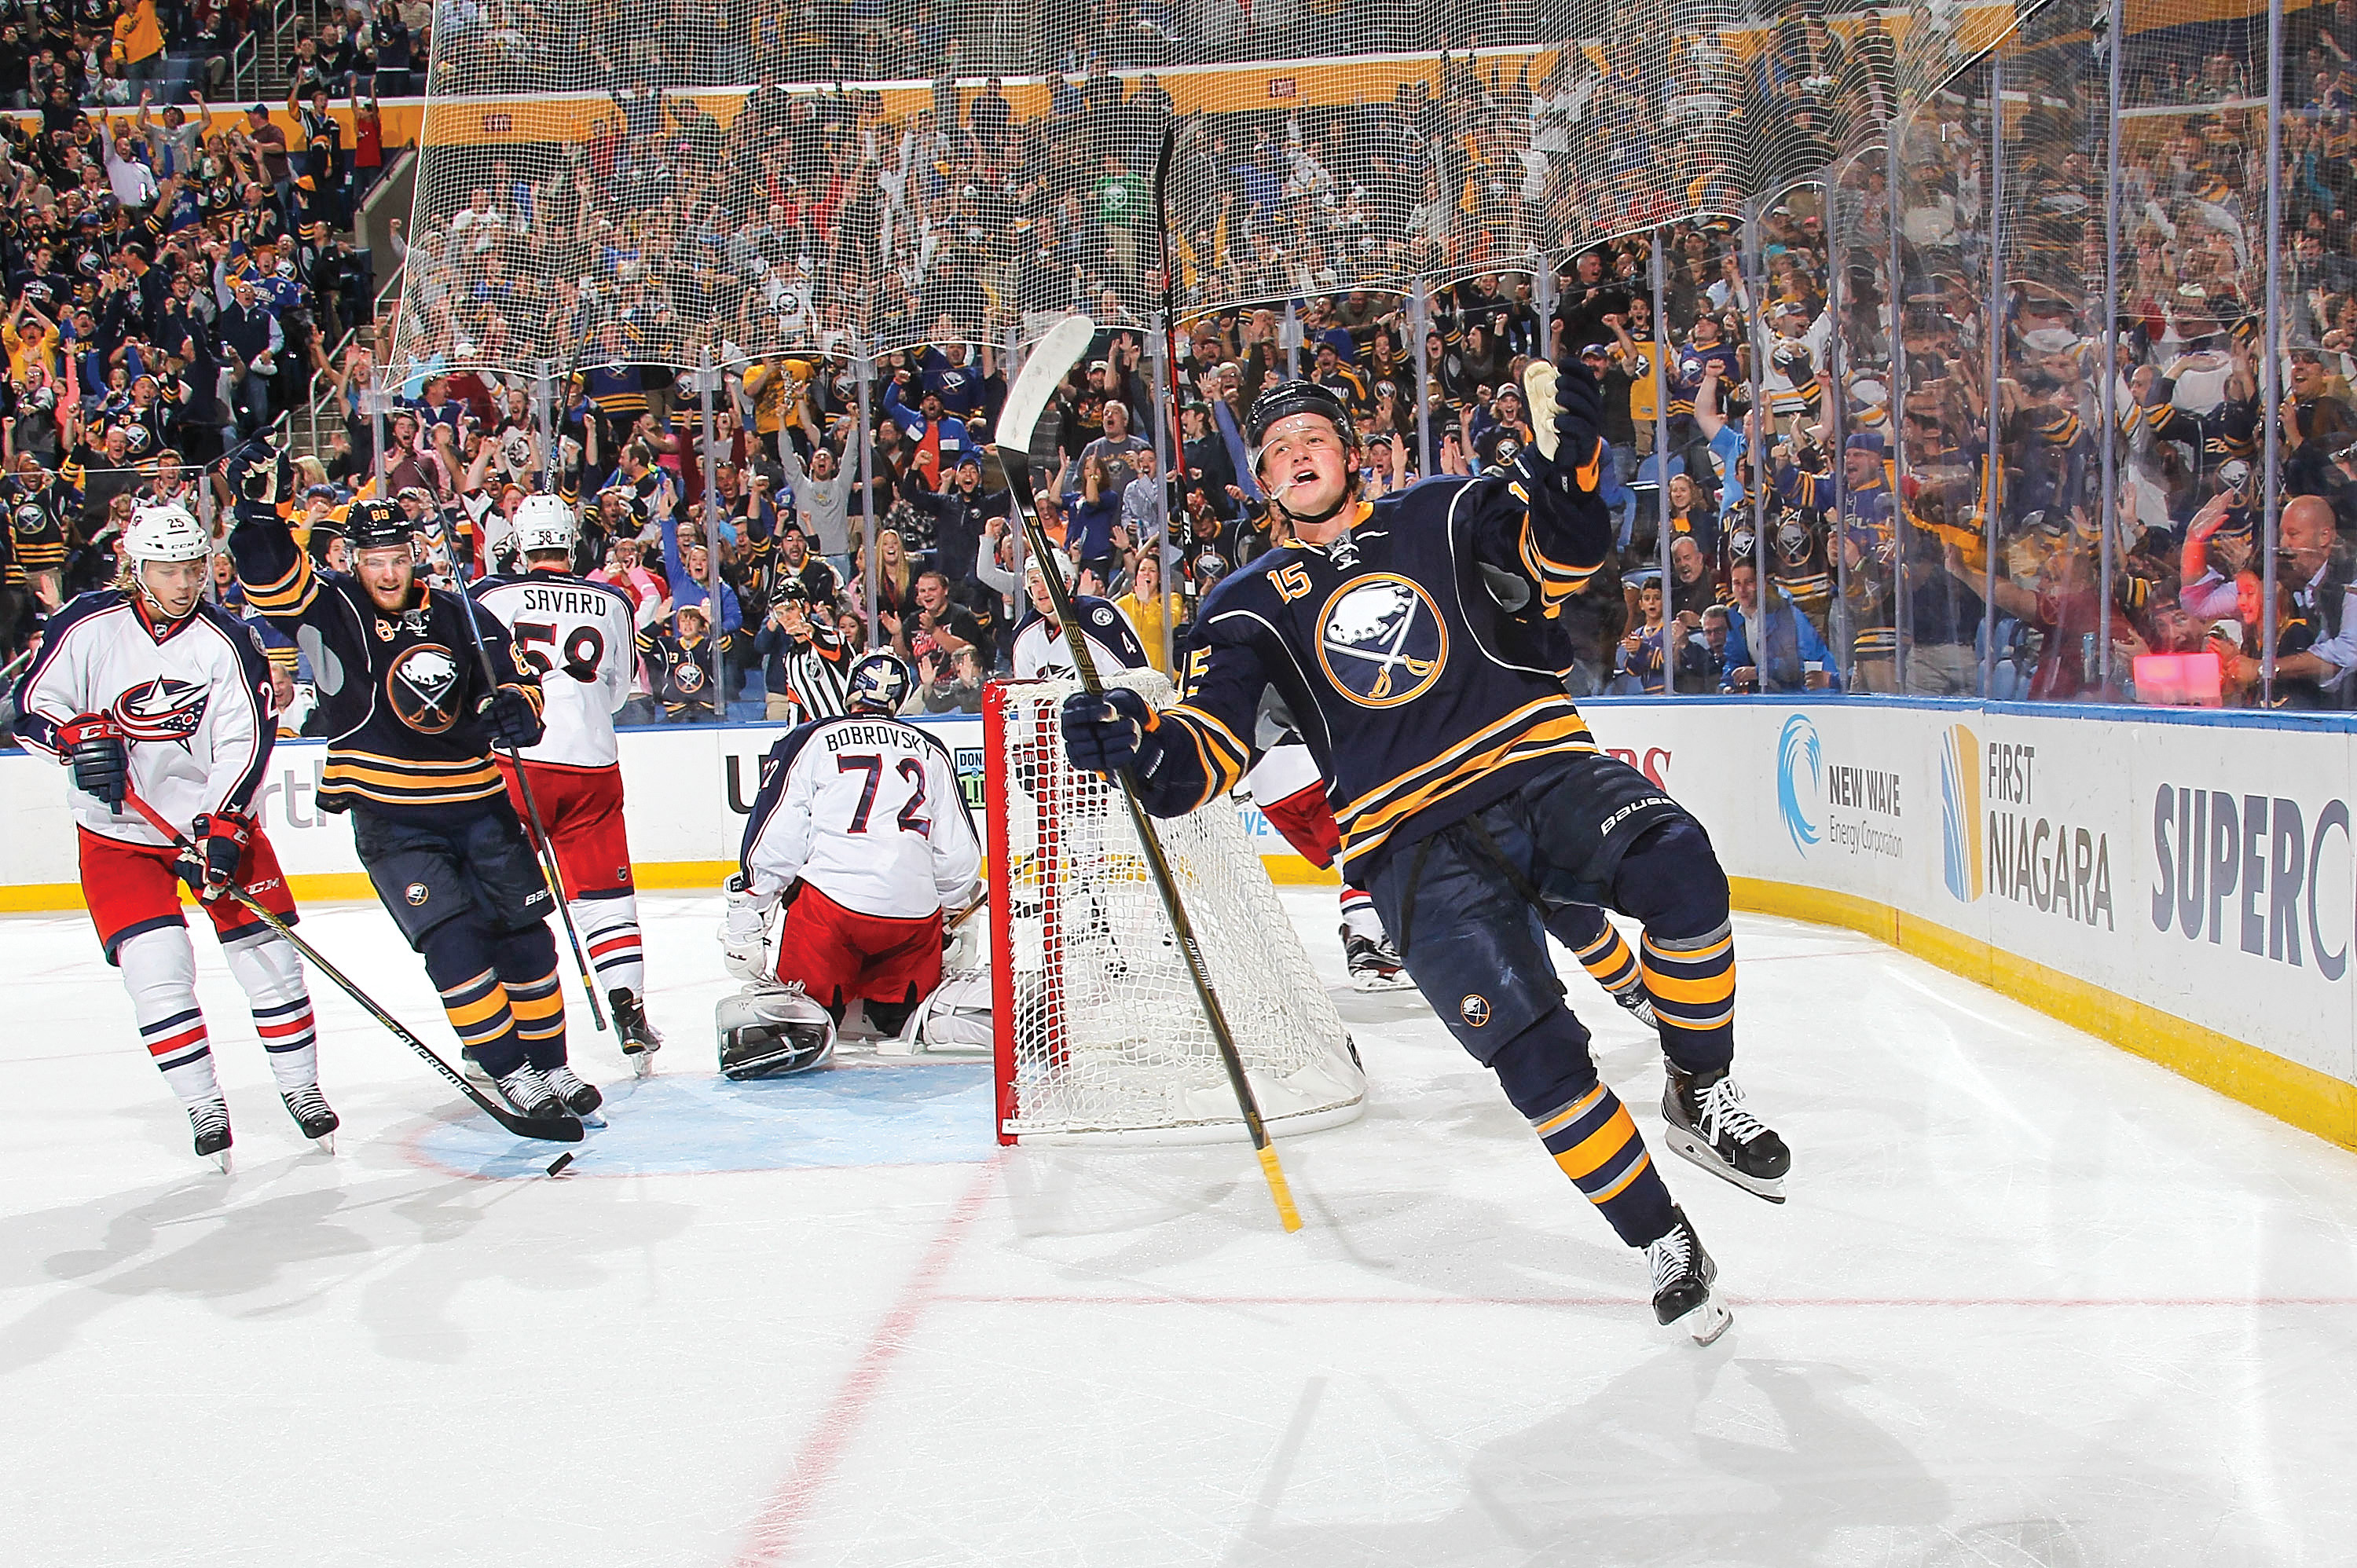 BUFFALO, NY - OCTOBER 12:  Jack Eichel #15 of the Buffalo Sabres celebrates his third period goal against Sergei Bobrovsky #72 of the Columbus Blue Jackets on October 12, 2015 at the First Niagara Center in Buffalo, New York. Buffalo won, 4-2.  (Photo by Bill Wippert/NHLI via Getty Images)